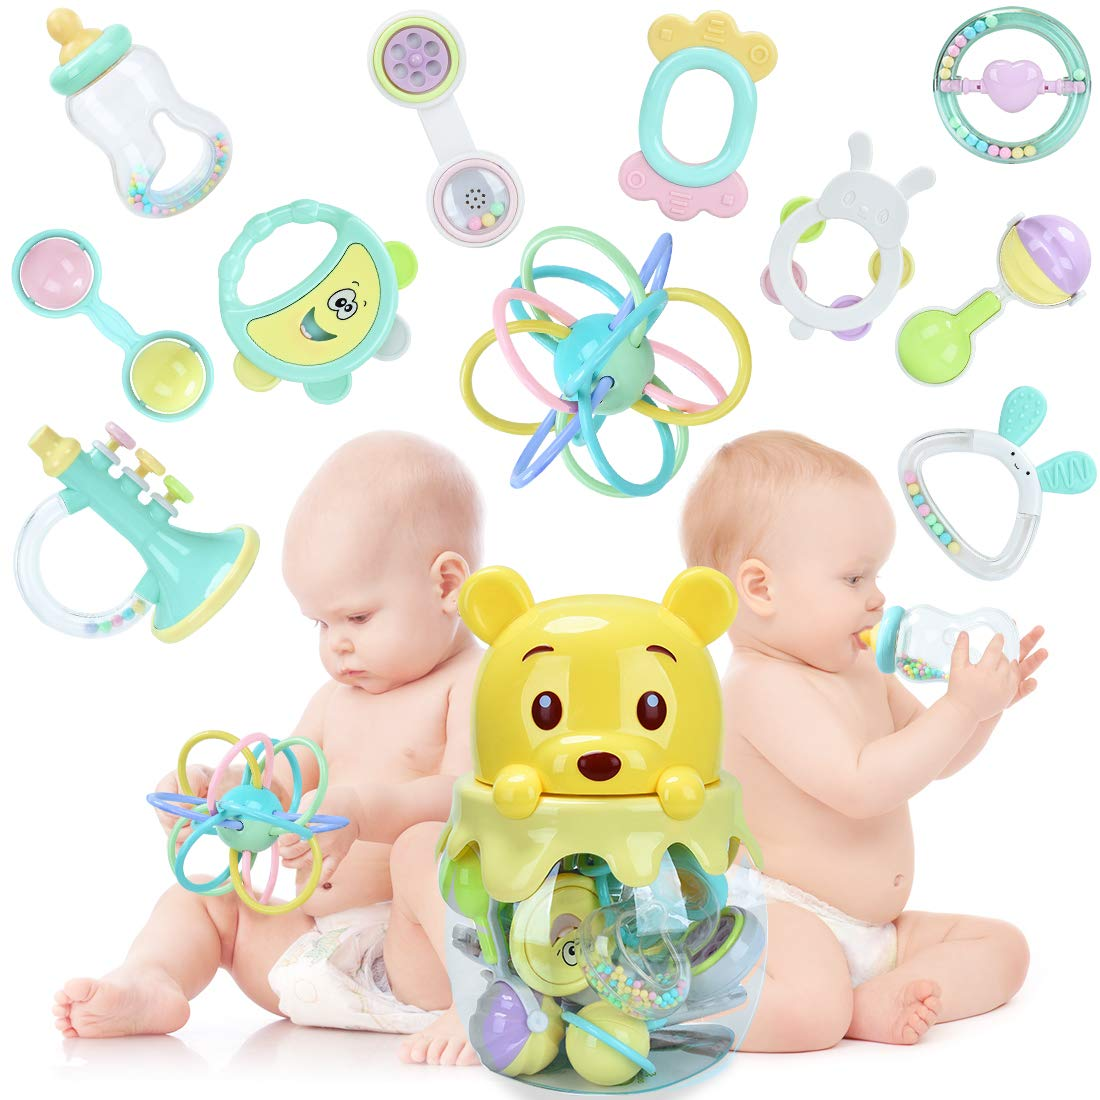 FORSTART 11pcs Baby Rattles Teether, Shaker, Grab Spin Rattles Teething Toys Set BPA-Free Silicone 3 6 9 12 Month Early Education Musical Sounds Infants Newborn Toddlers Play Bear Jar Bottle by FORSTART